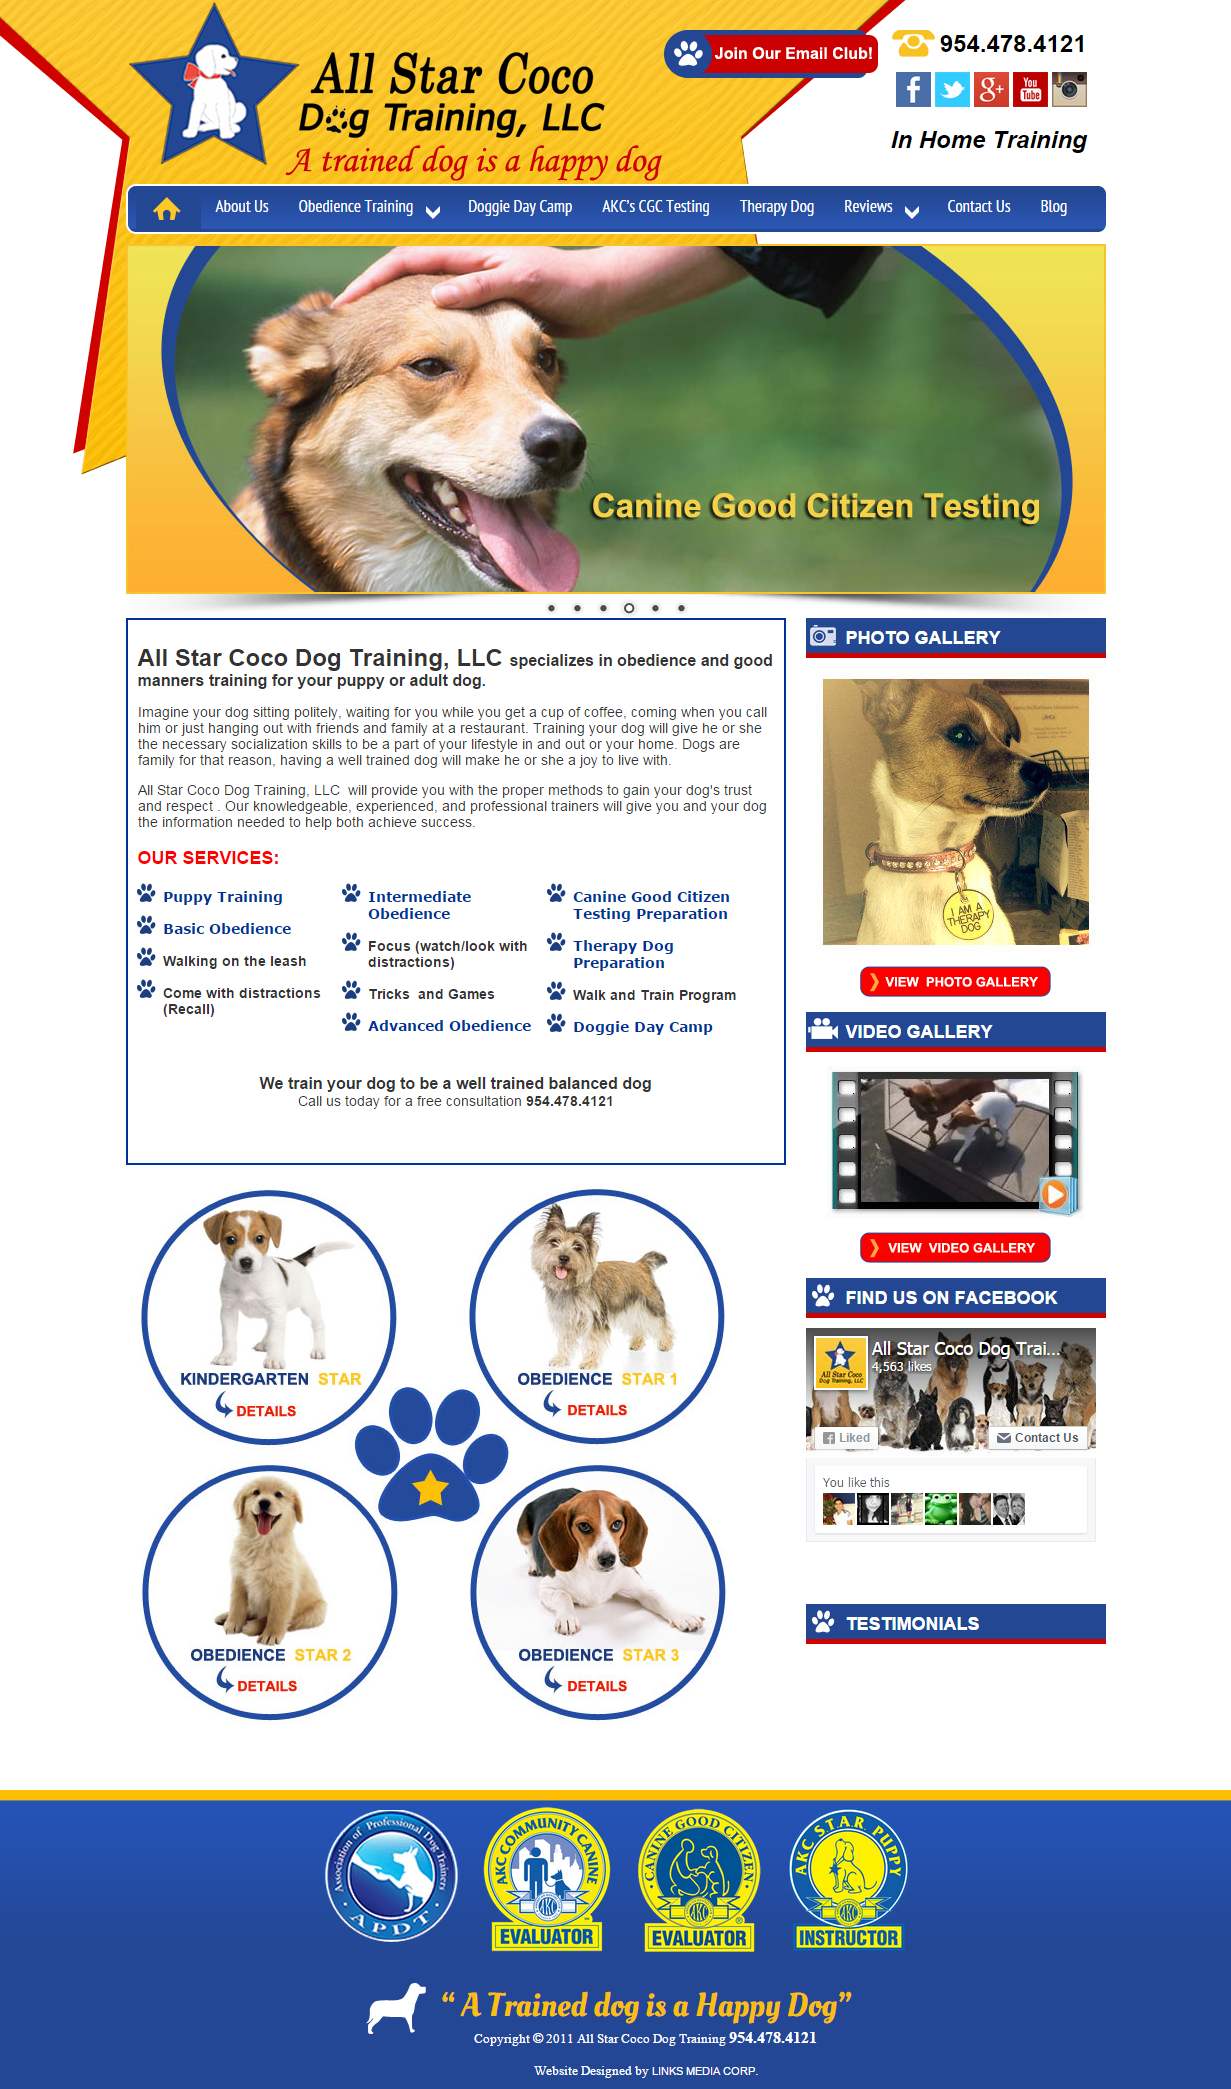 All Star Coco Dog Training, LLC